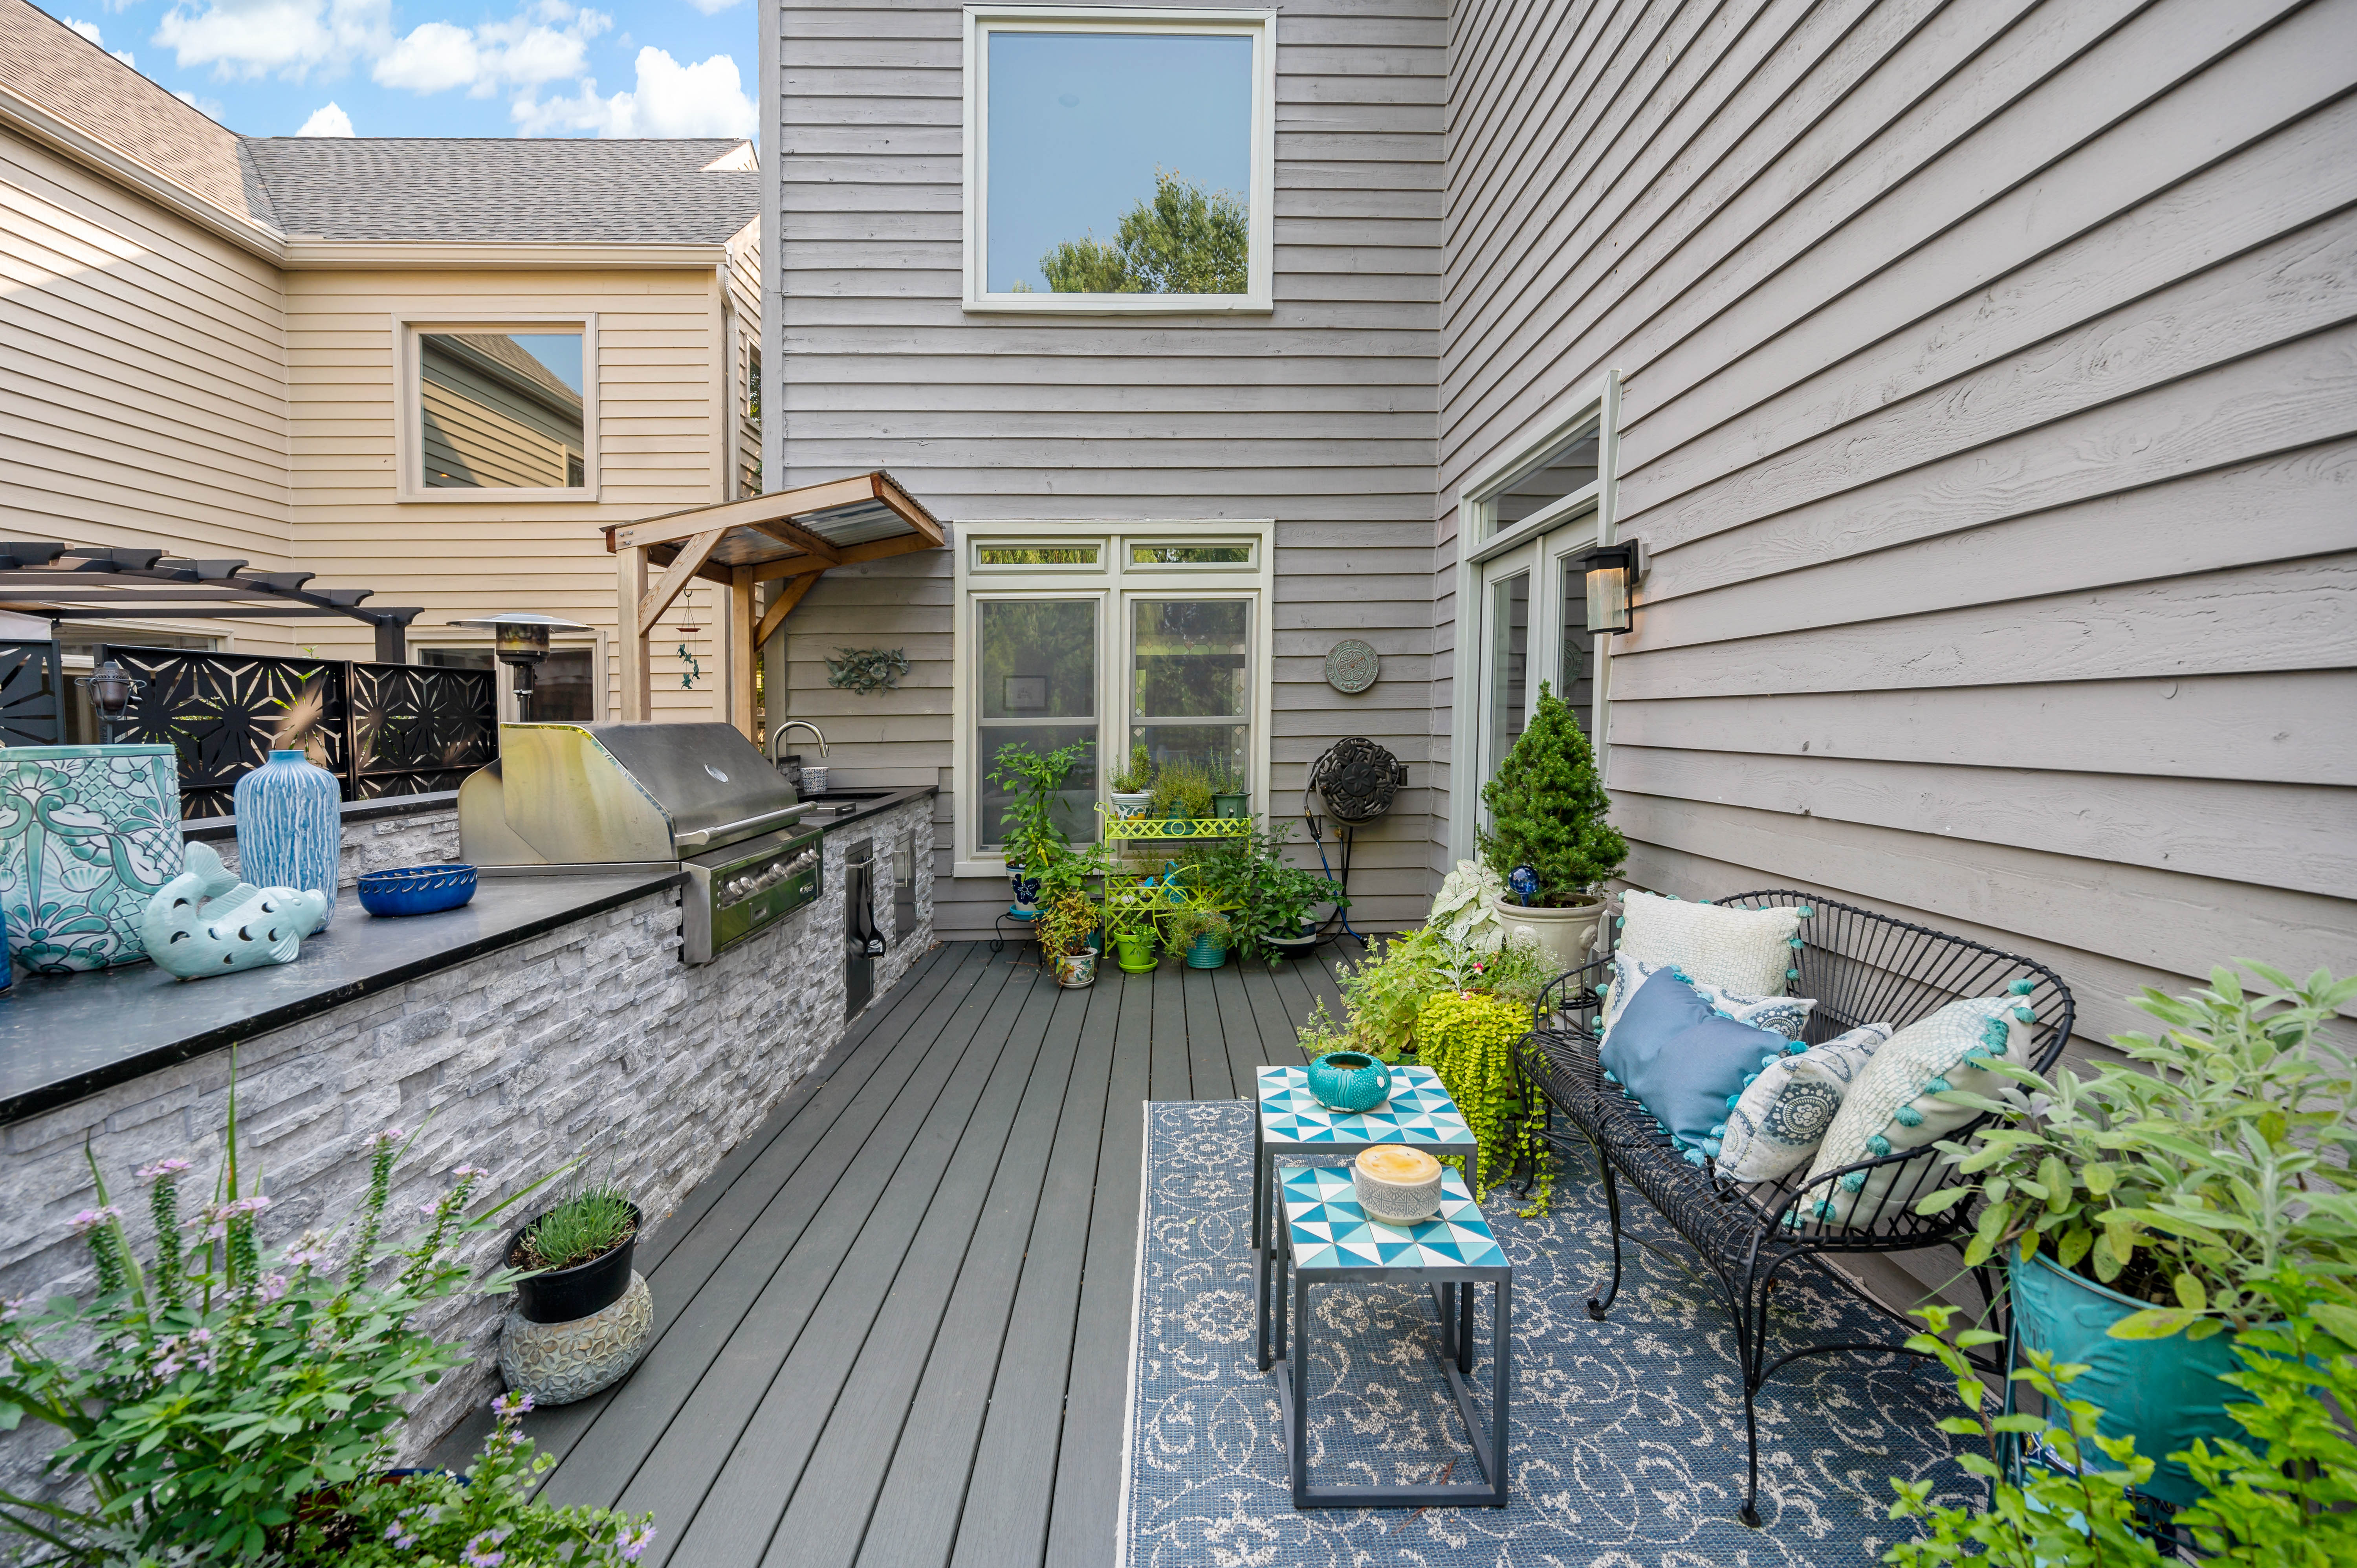 From Postage Stamp Size to Perfection, this Reston Deck Remodel Is A Stunner